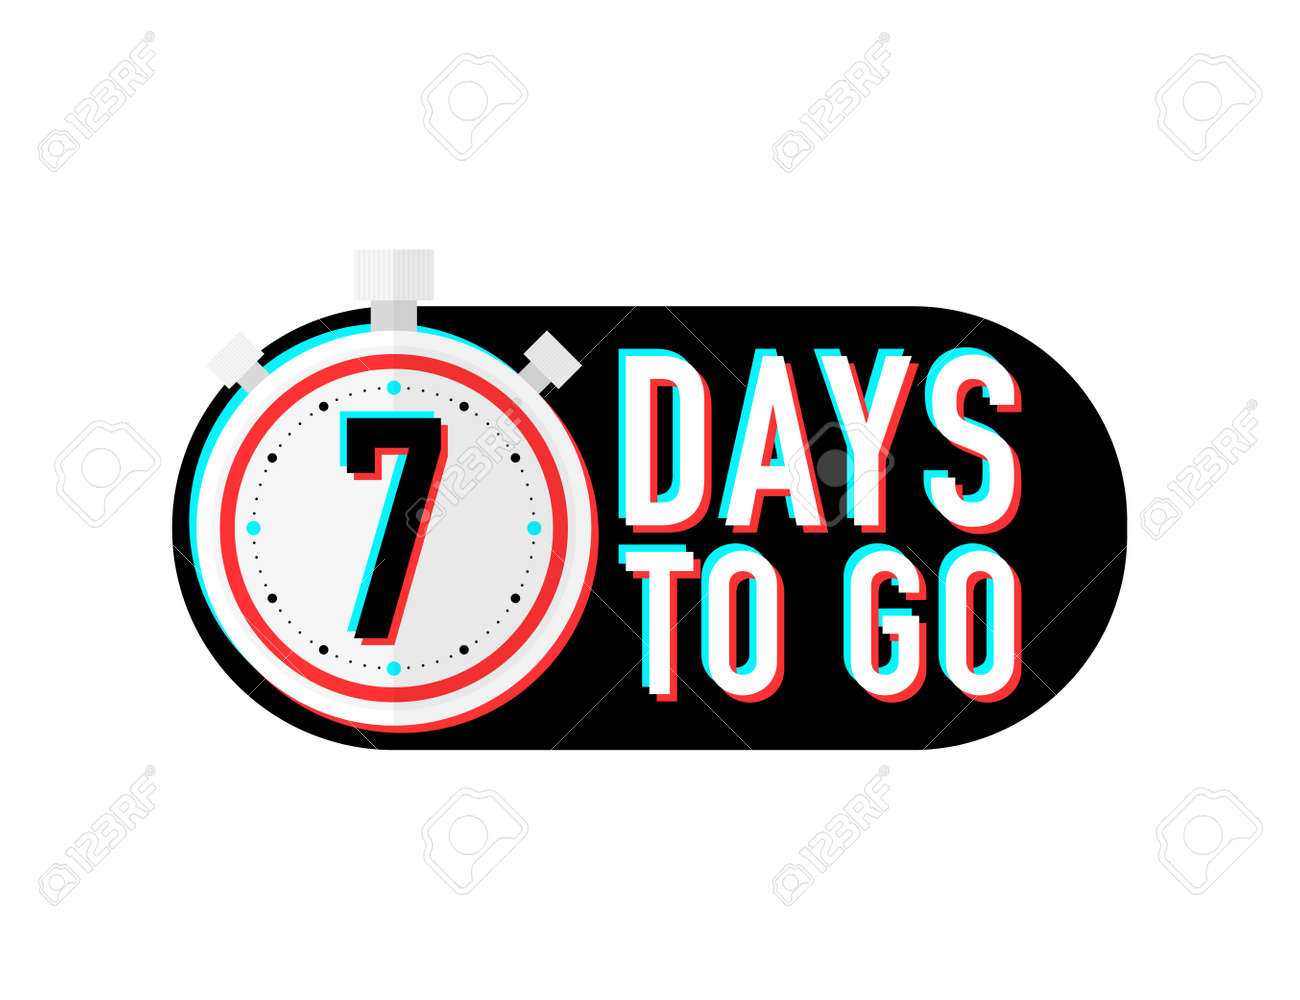 Timer number seven days to go countdown vector illustration template on white background. Vector - 164122279